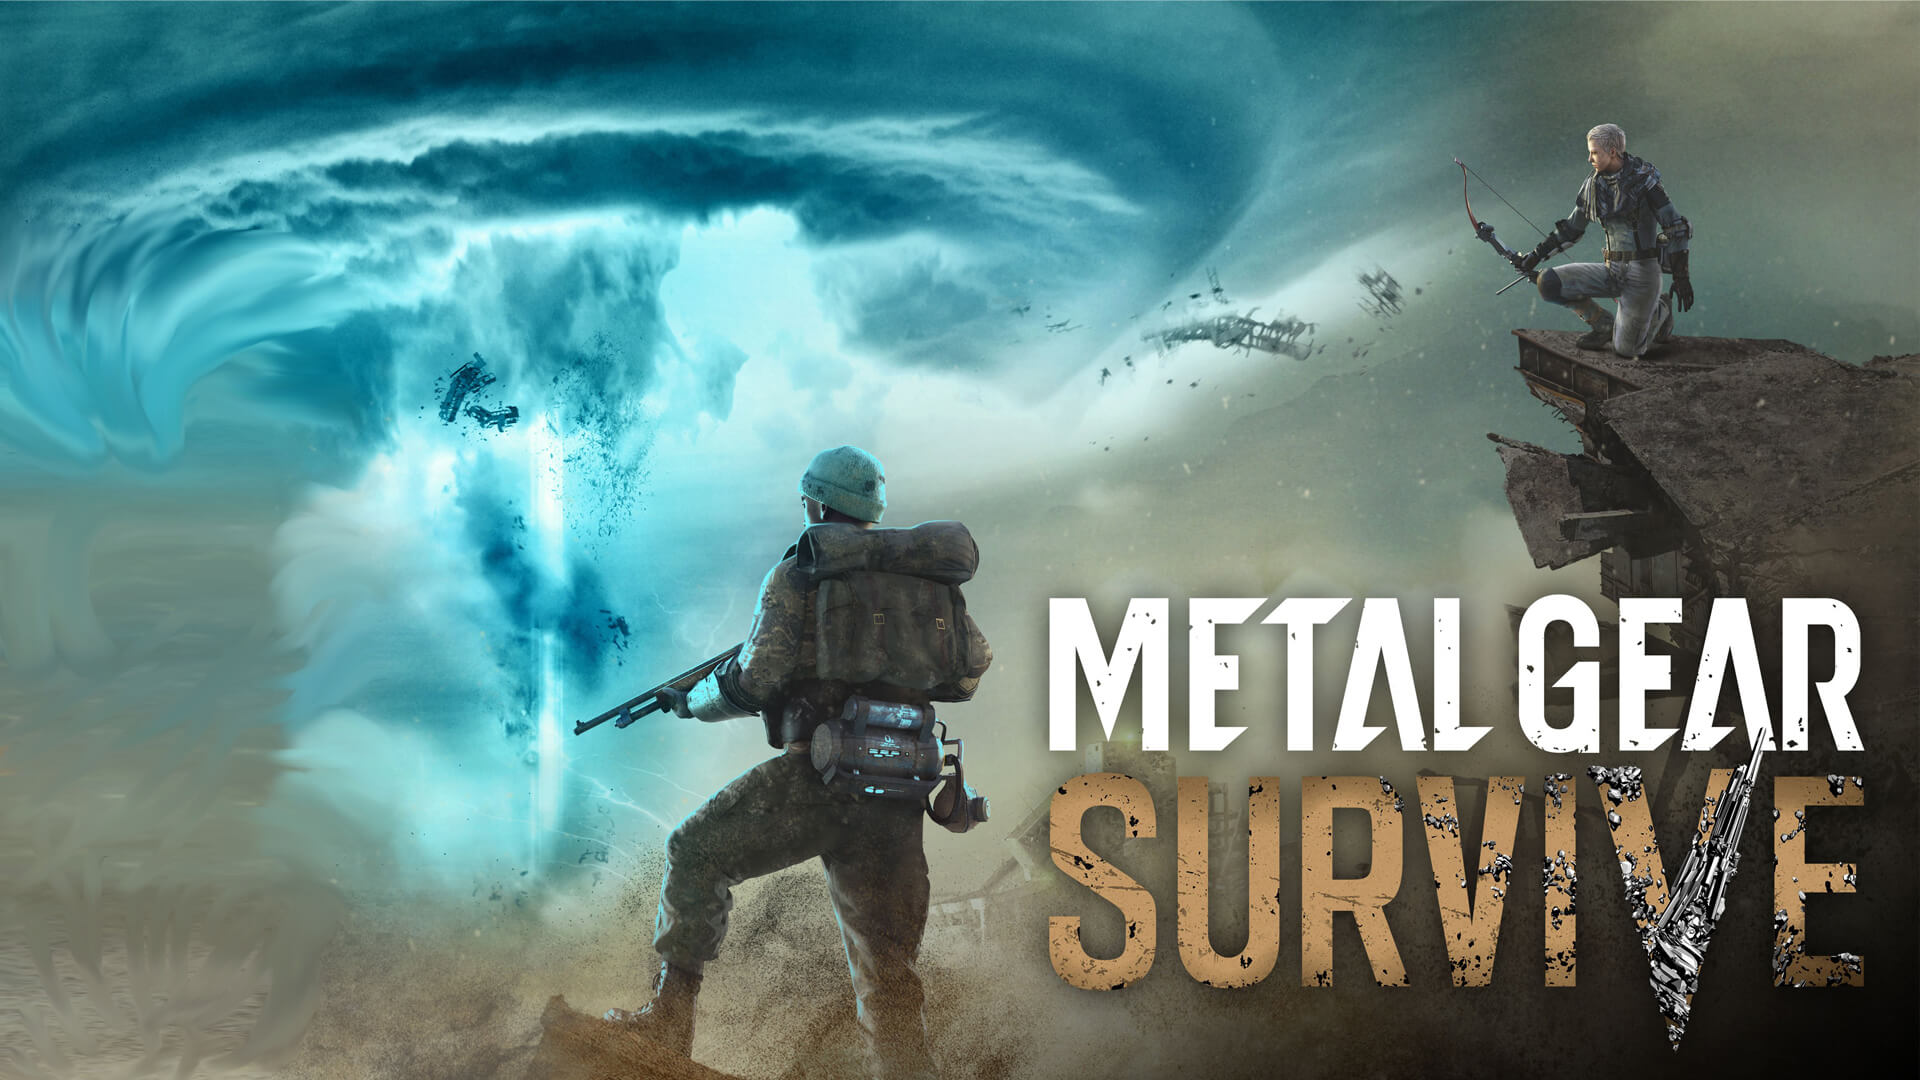 Metal Gear Survive Receives Free Trial for PlayStation Plus